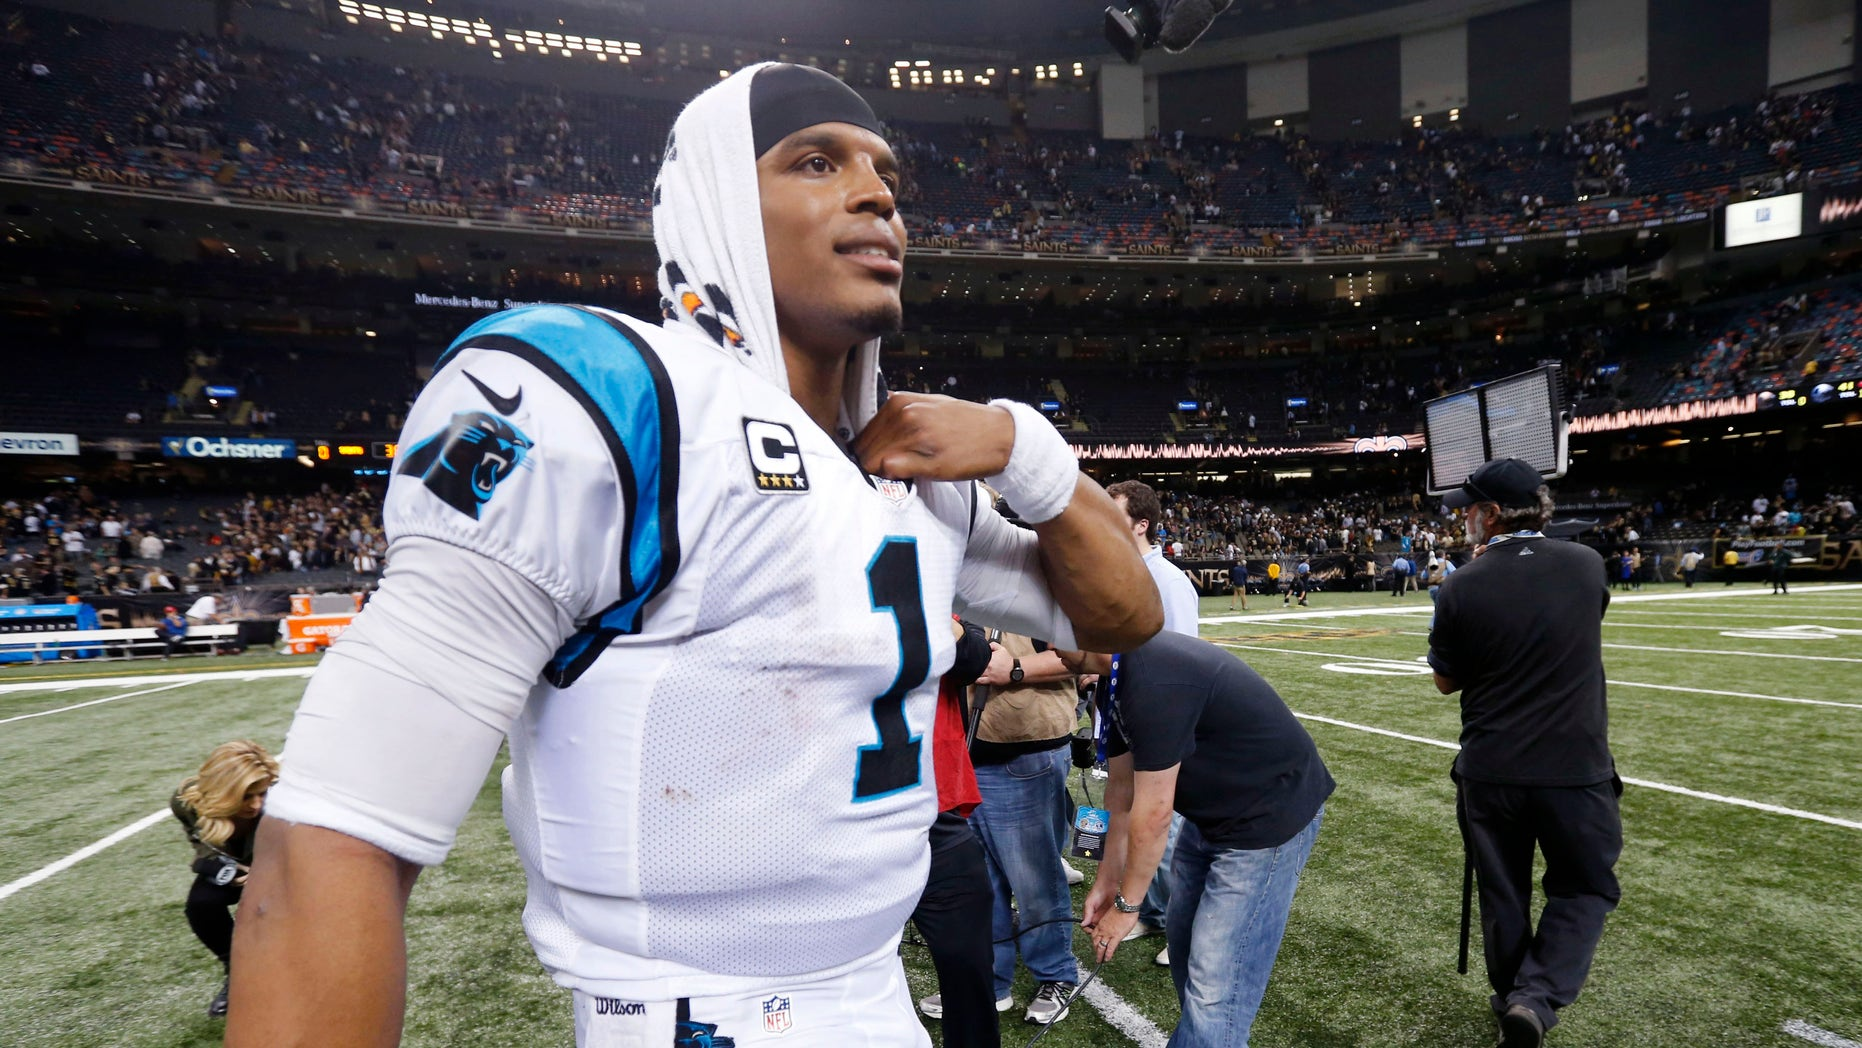 Carolina Panthers quarterback Cam Newton (1) walks on the field after an NFL football game against the New Orleans Saints in New Orleans, Sunday, Dec. 6, 2015. The Panthers won 41-38. (AP Photo/Bill Feig)